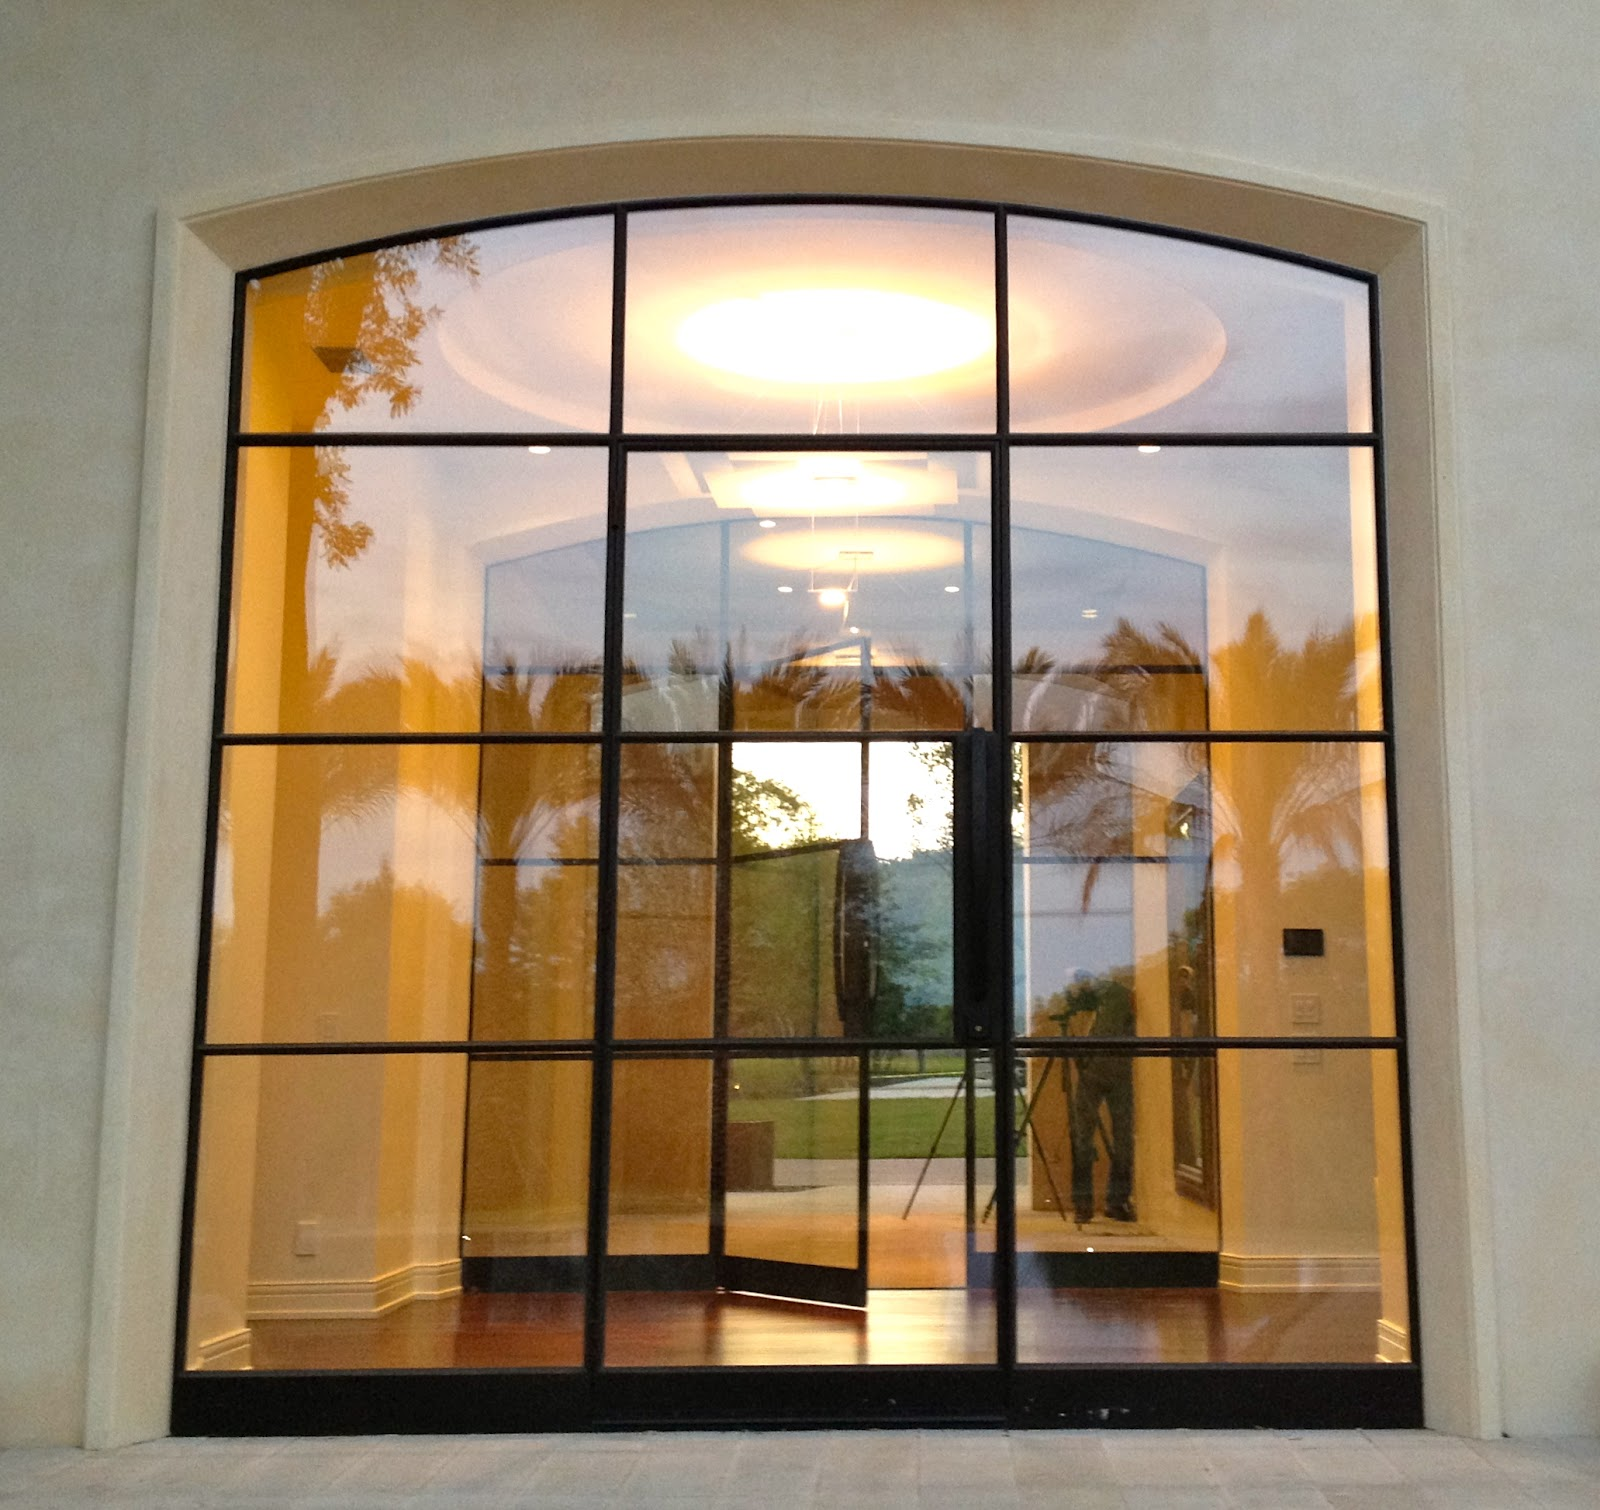 1510 #6F491F 2nd Entry Was Added To Allow View And Access To The Stunning Pool  save image Custom Made Steel Doors 46671600